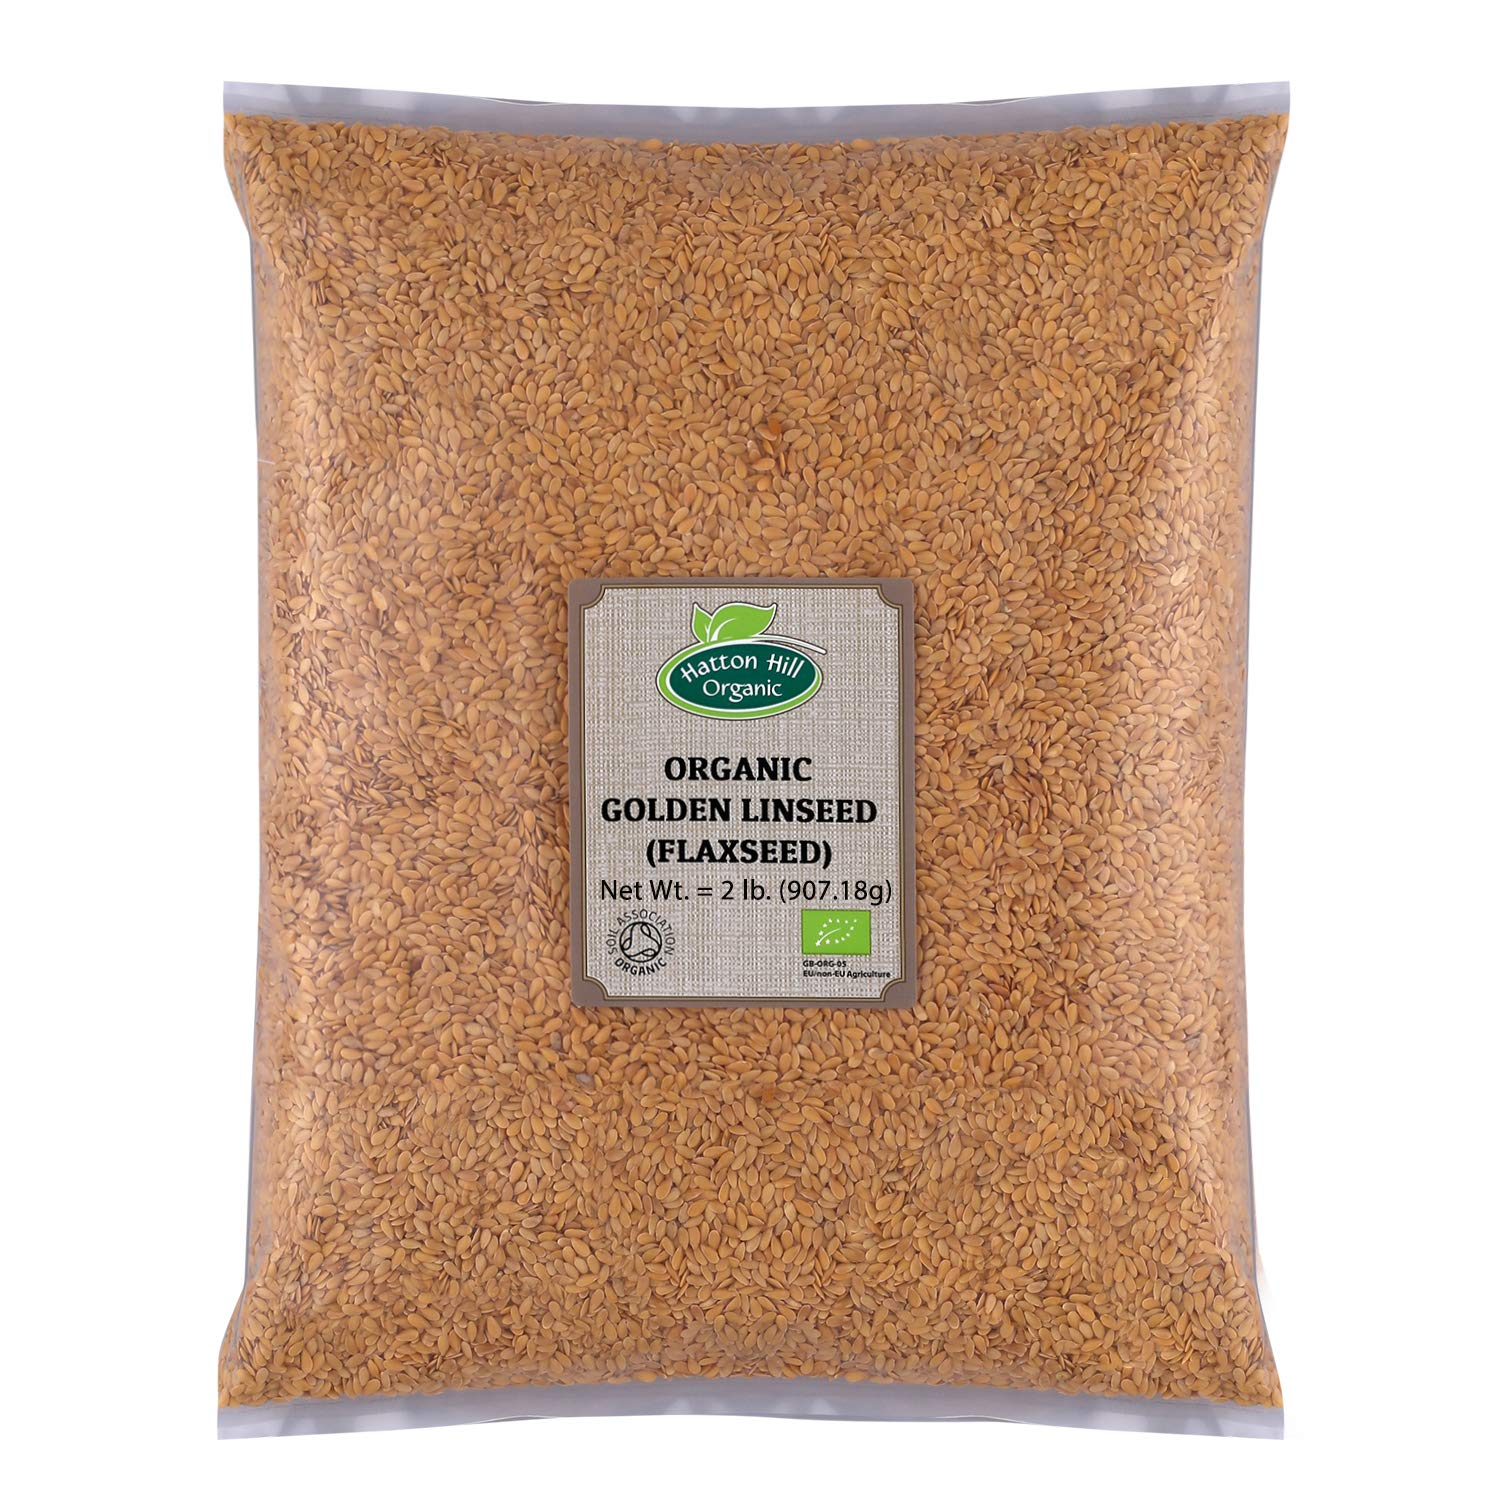 Organic Golden Flax Seeds (Linseed) 2lb by Hatton Hill Organic